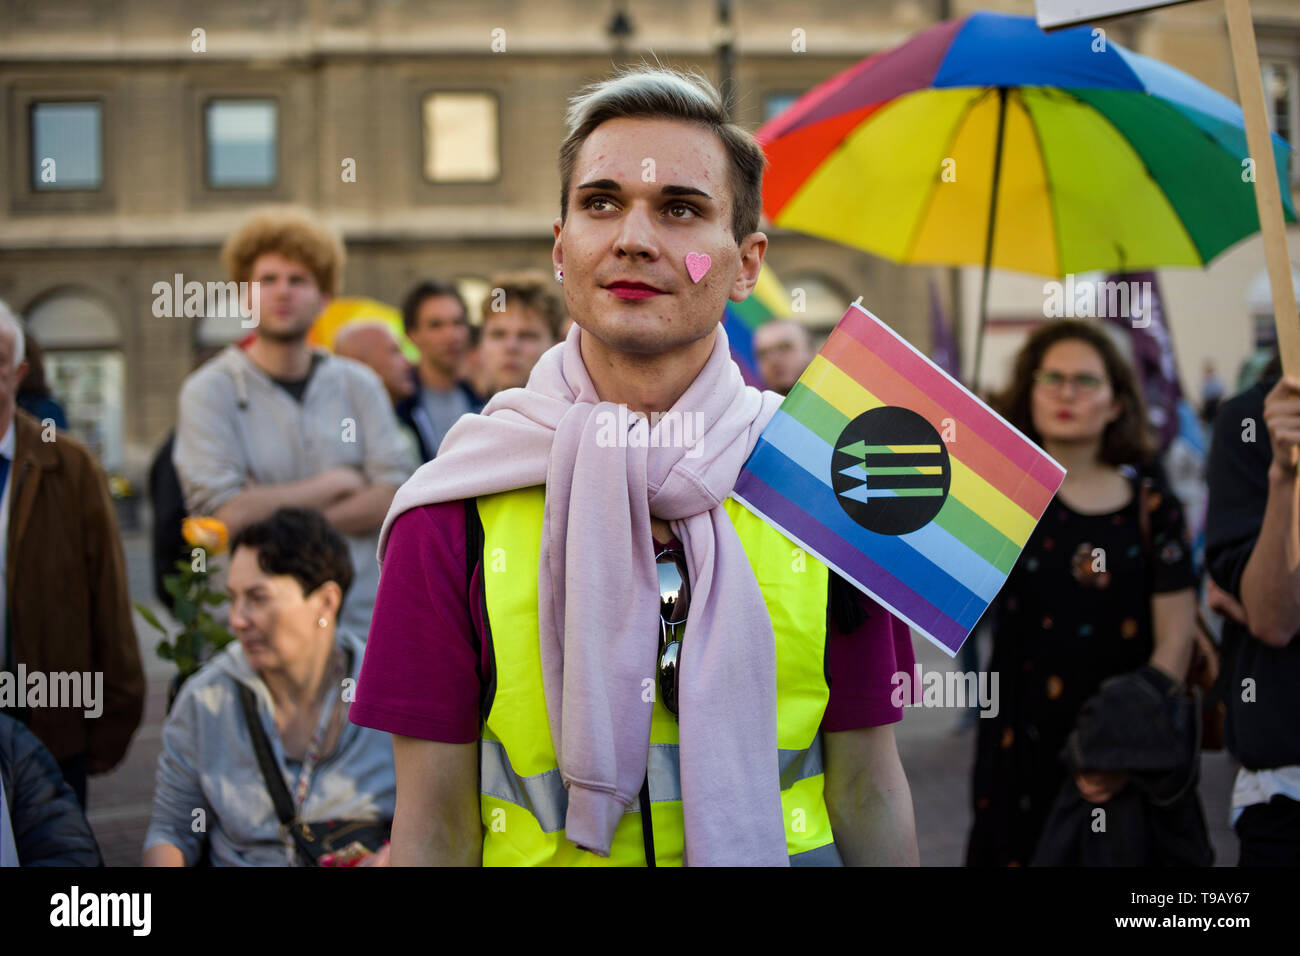 A protester seen holding a rainbow flag during the demonstration. The International Day against Homophobia, Transphobia and Biphobia is celebrated around the world. This date commemorates the deletion of homosexuality from the International Classification of Diseases by the World Health Organization on May 17, 1990. Dozens of LGBTQ activists and supporters gathered in Warsaw to show their opposition to the growing wave of hatred towards the non-heteronormative people and Elzbieta Podlesna, an activist who was arrested recently for designing and distributing posters of Virgin Mary with a rainbo Stock Photo